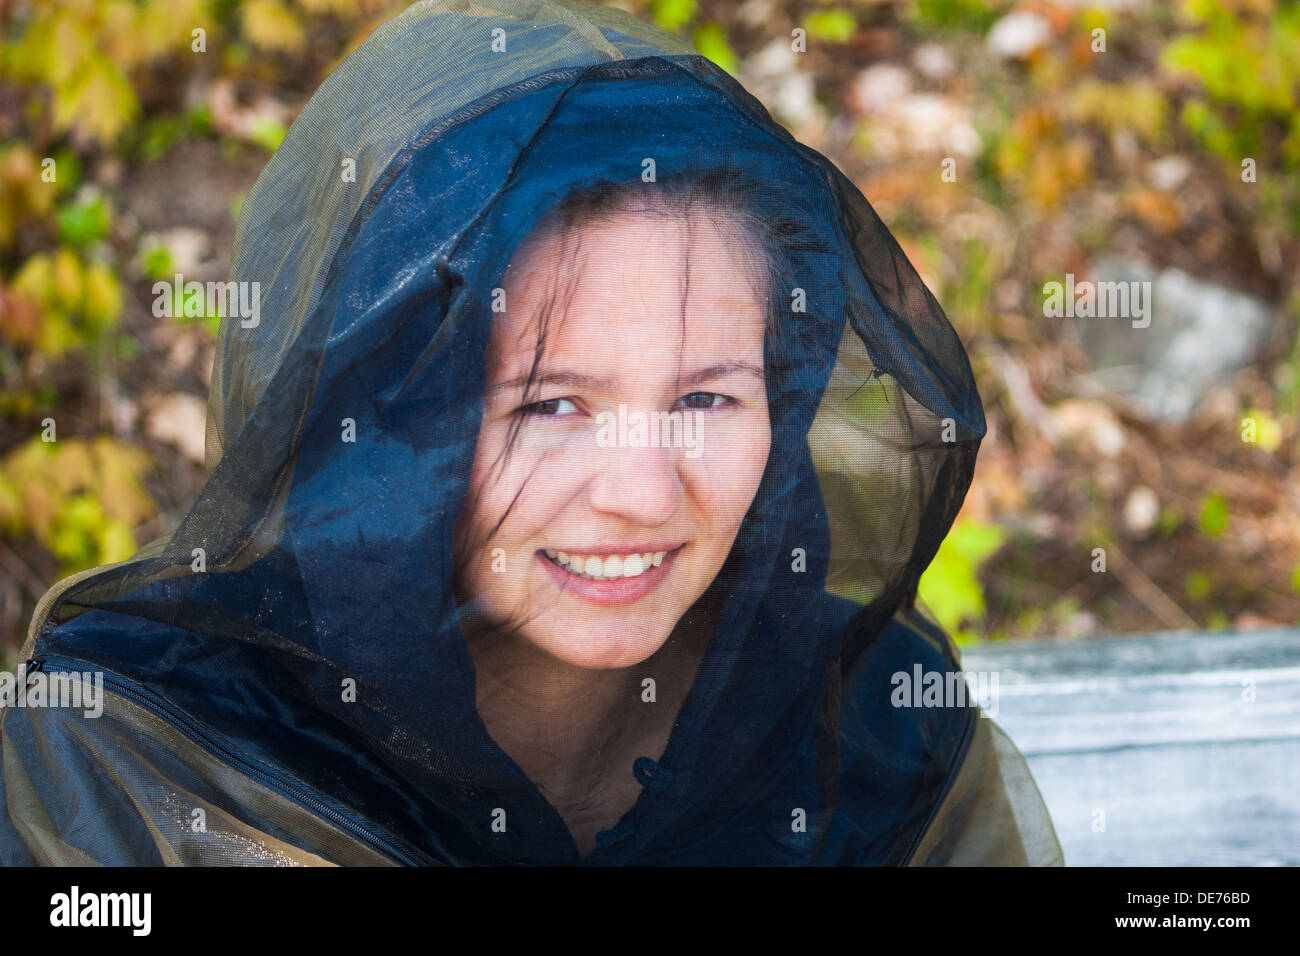 A young woman in Northern Cottage country wearing a bug shirt with screen over her face for protection from Black Flies in May - Stock Image